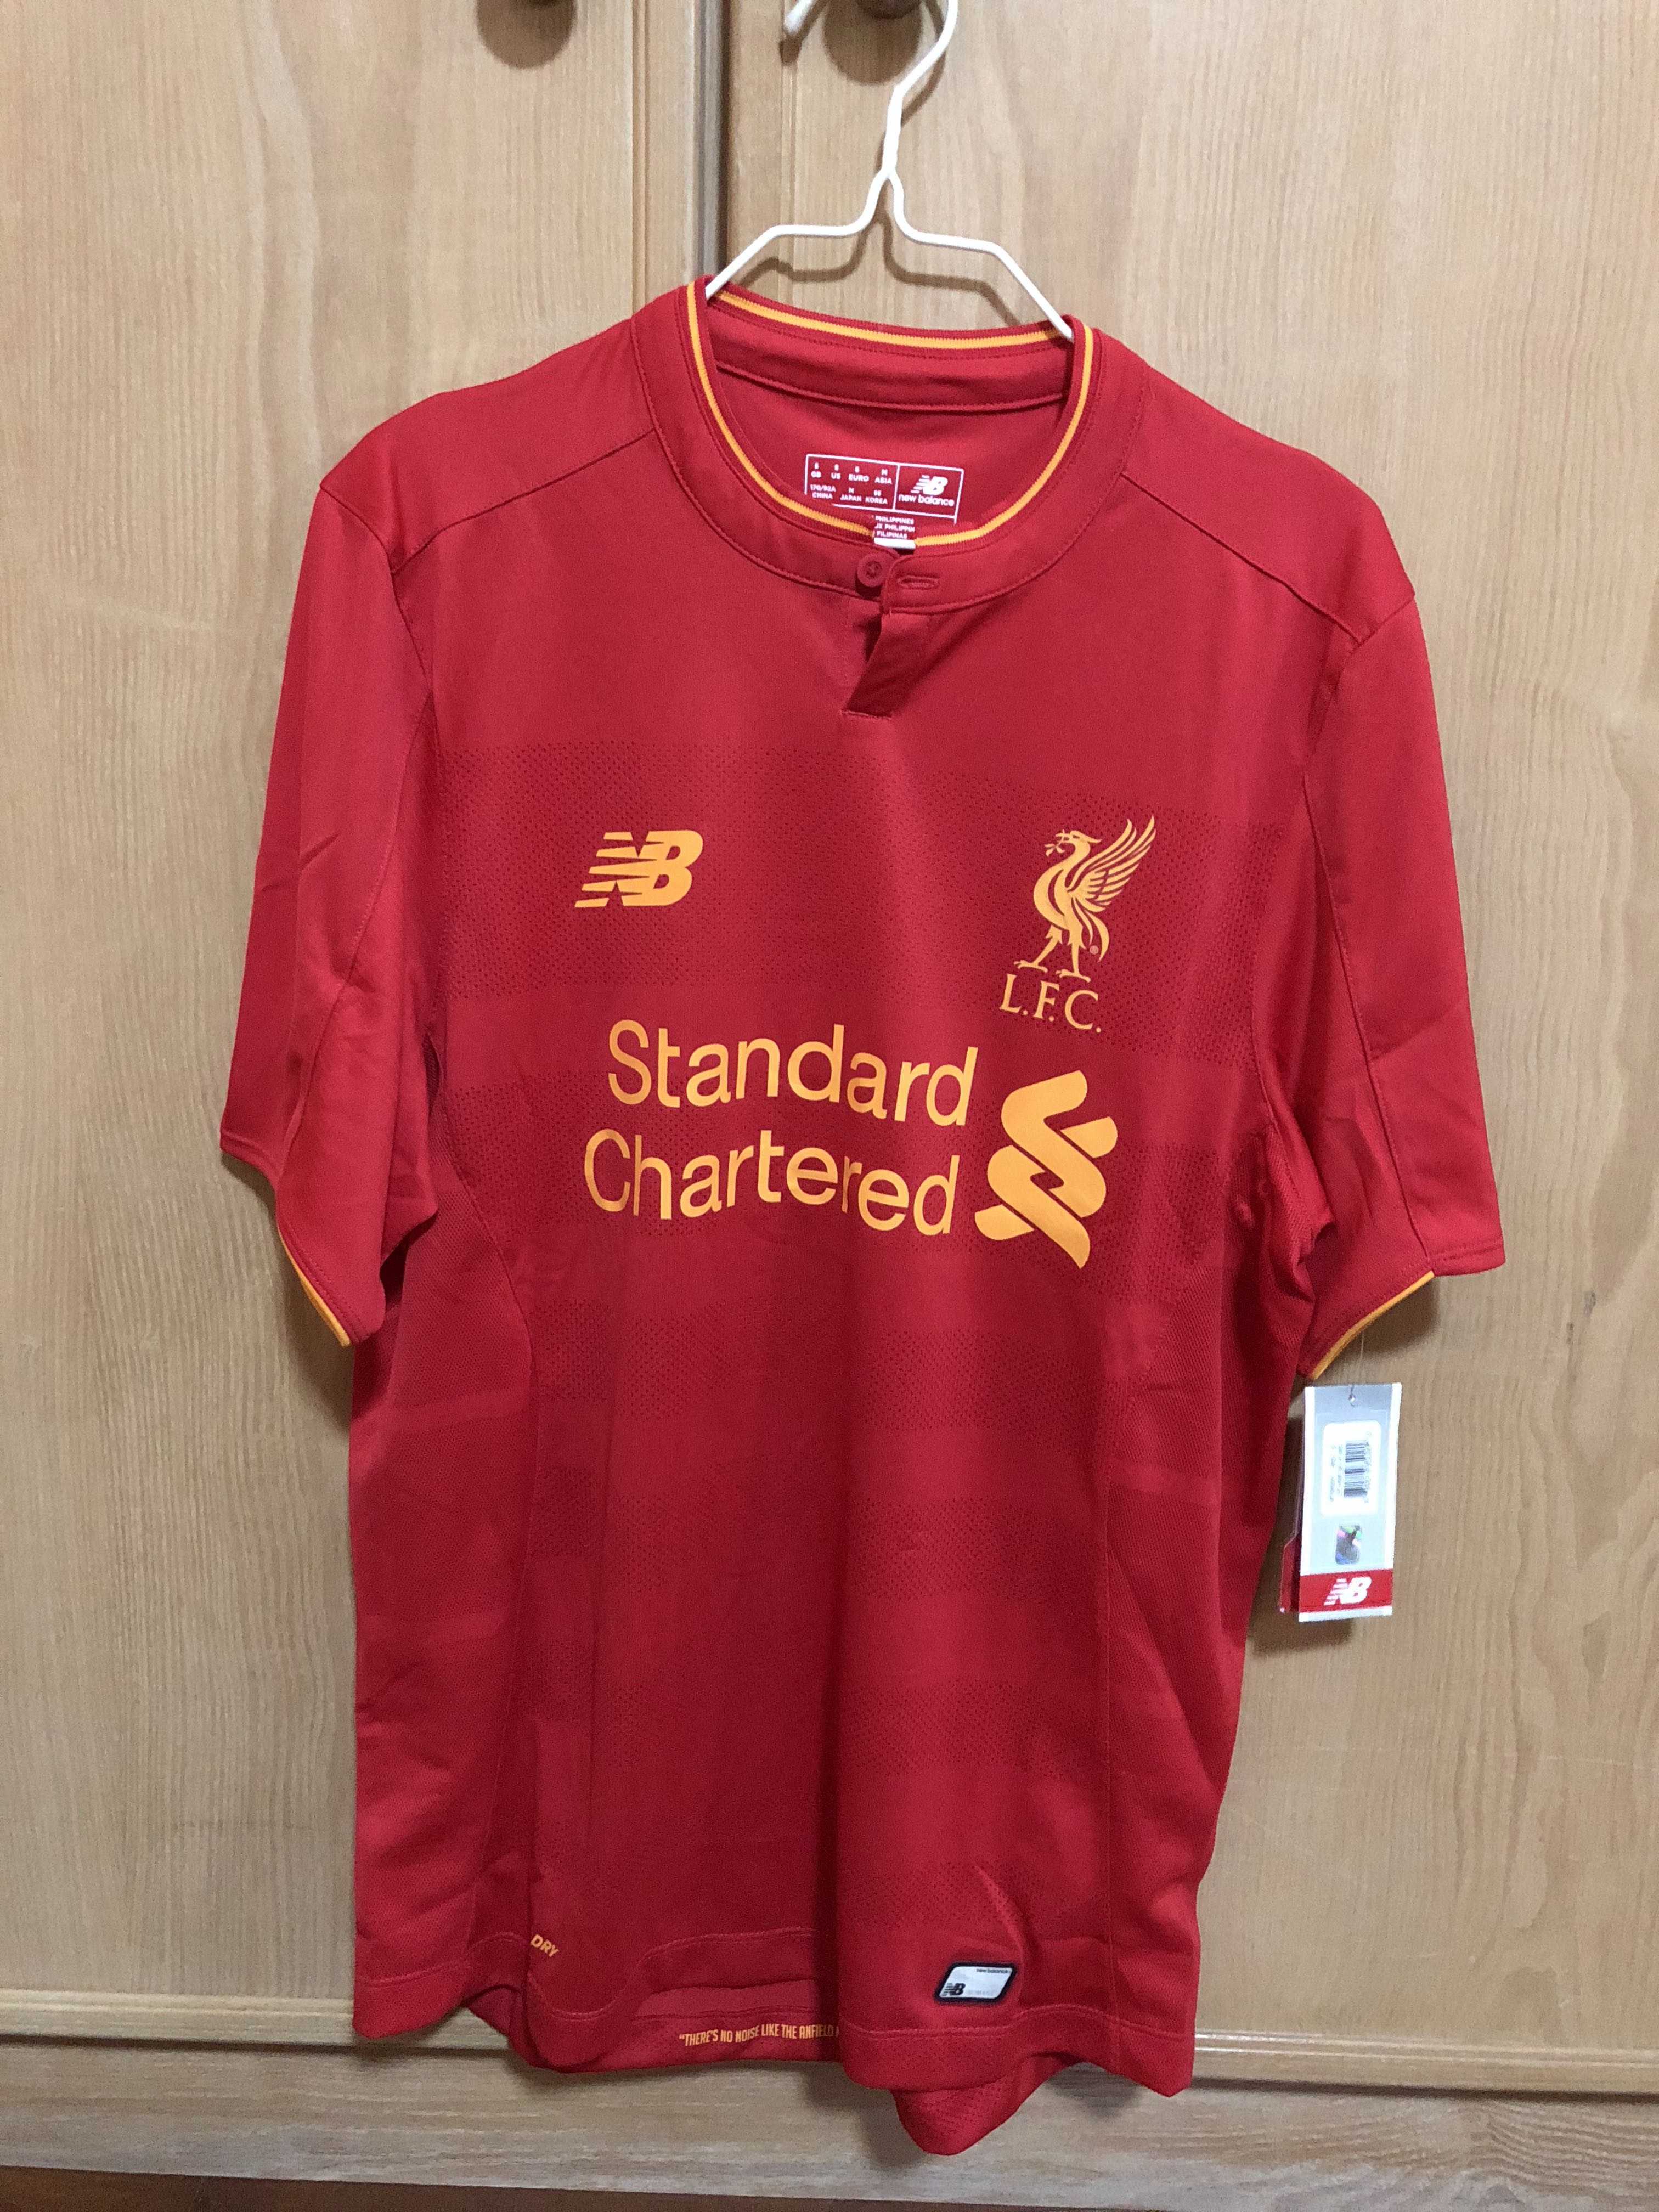 buy popular 54c94 fc9f3 Authentic NB Liverpool Jersey, Sports, Sports Apparel on ...